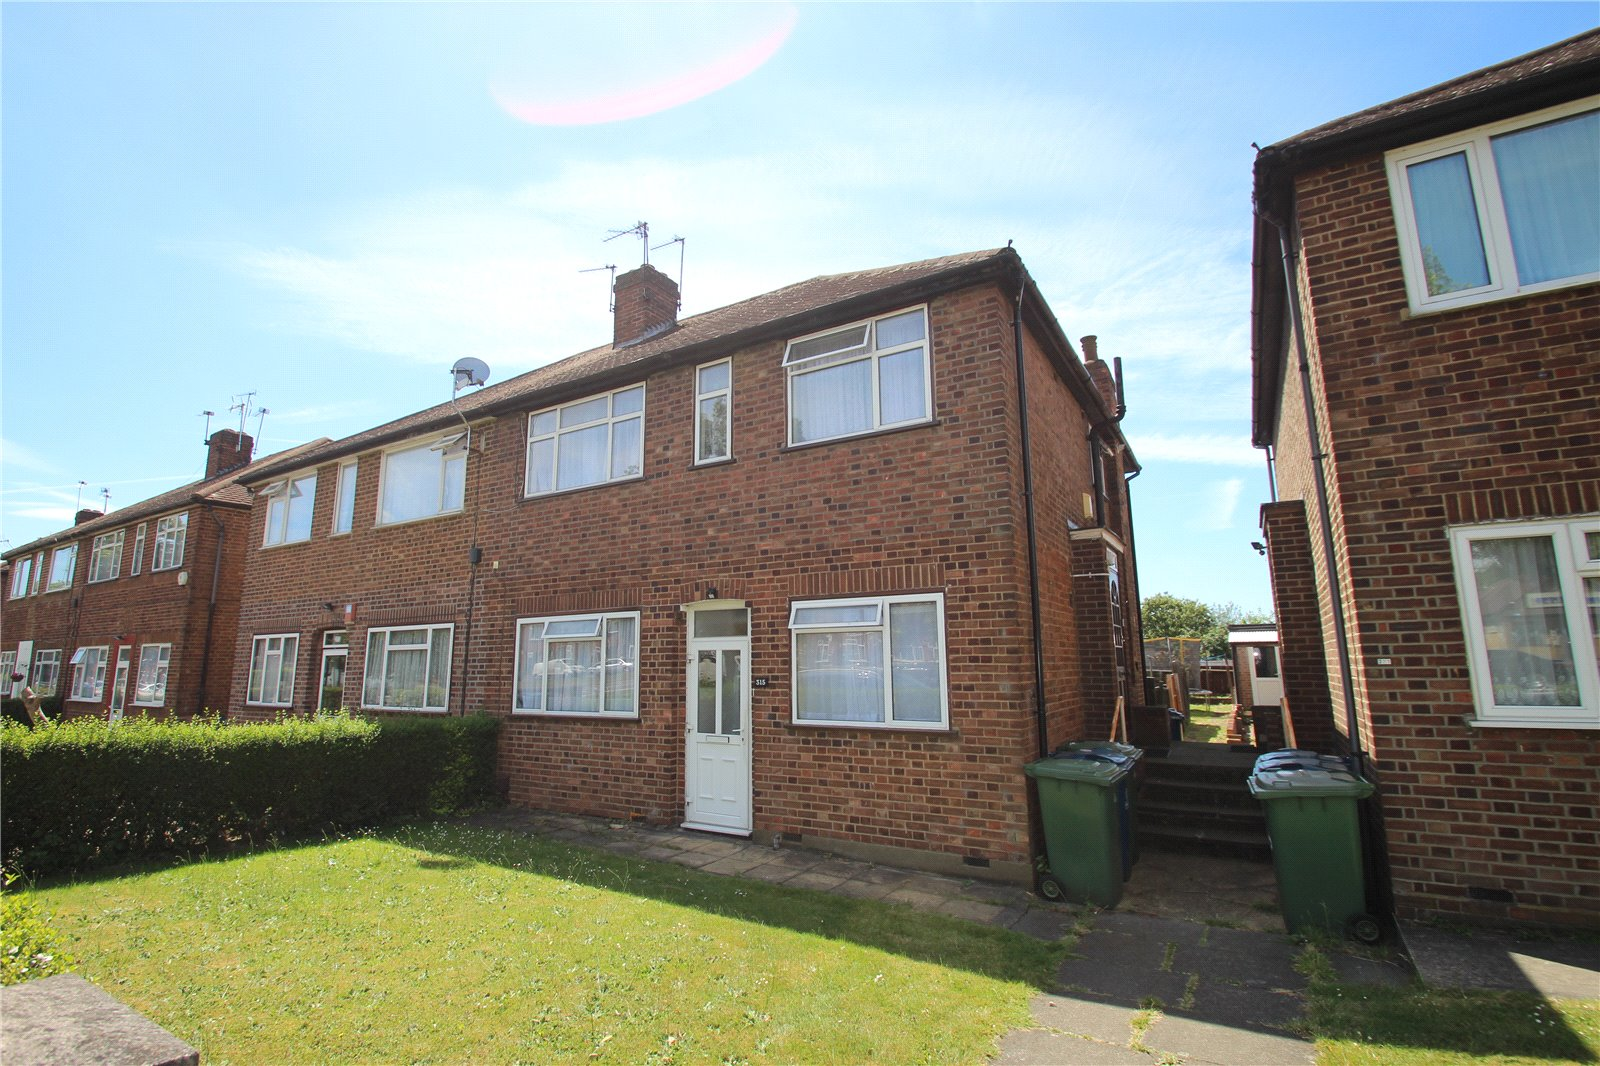 2 Bedrooms Maisonette Flat for sale in Honeypot Lane Stanmore Middlesex HA7